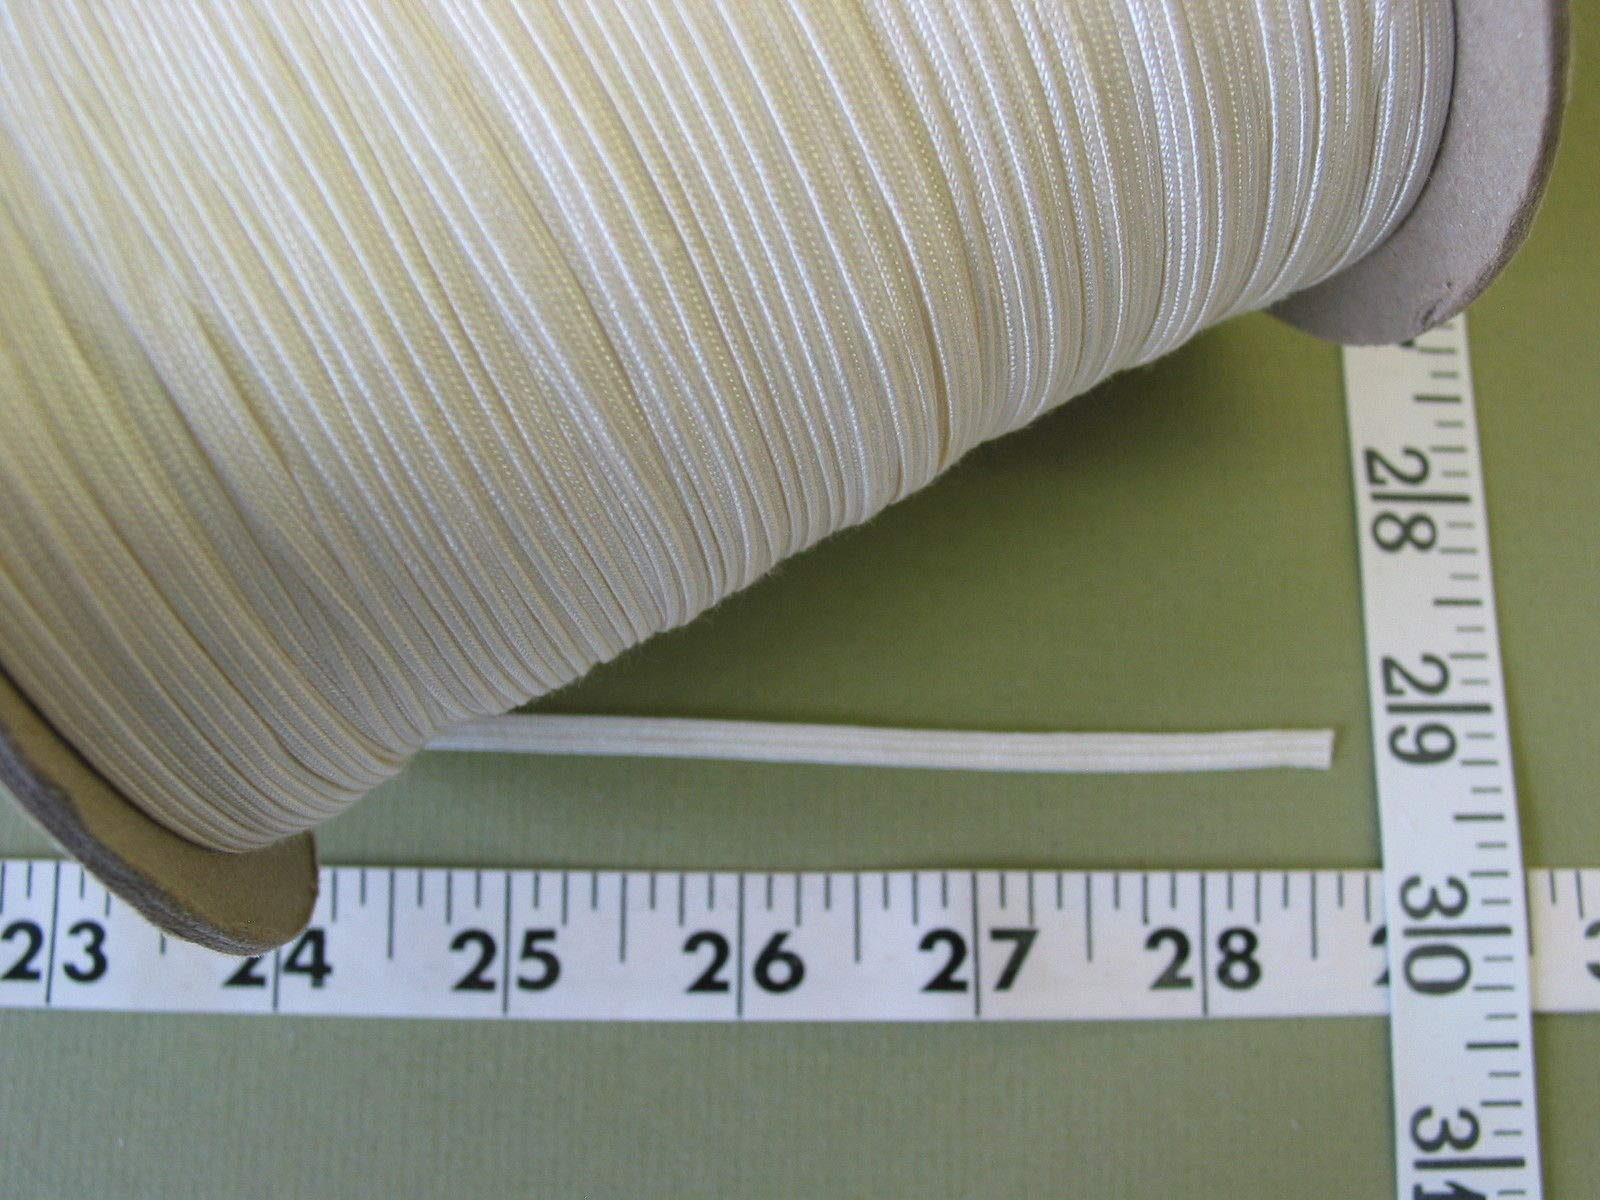 Trim Middy Braid Winter White Rayon 3/16 W 1 Roll 288 Yds Close Out Sale by Gonling